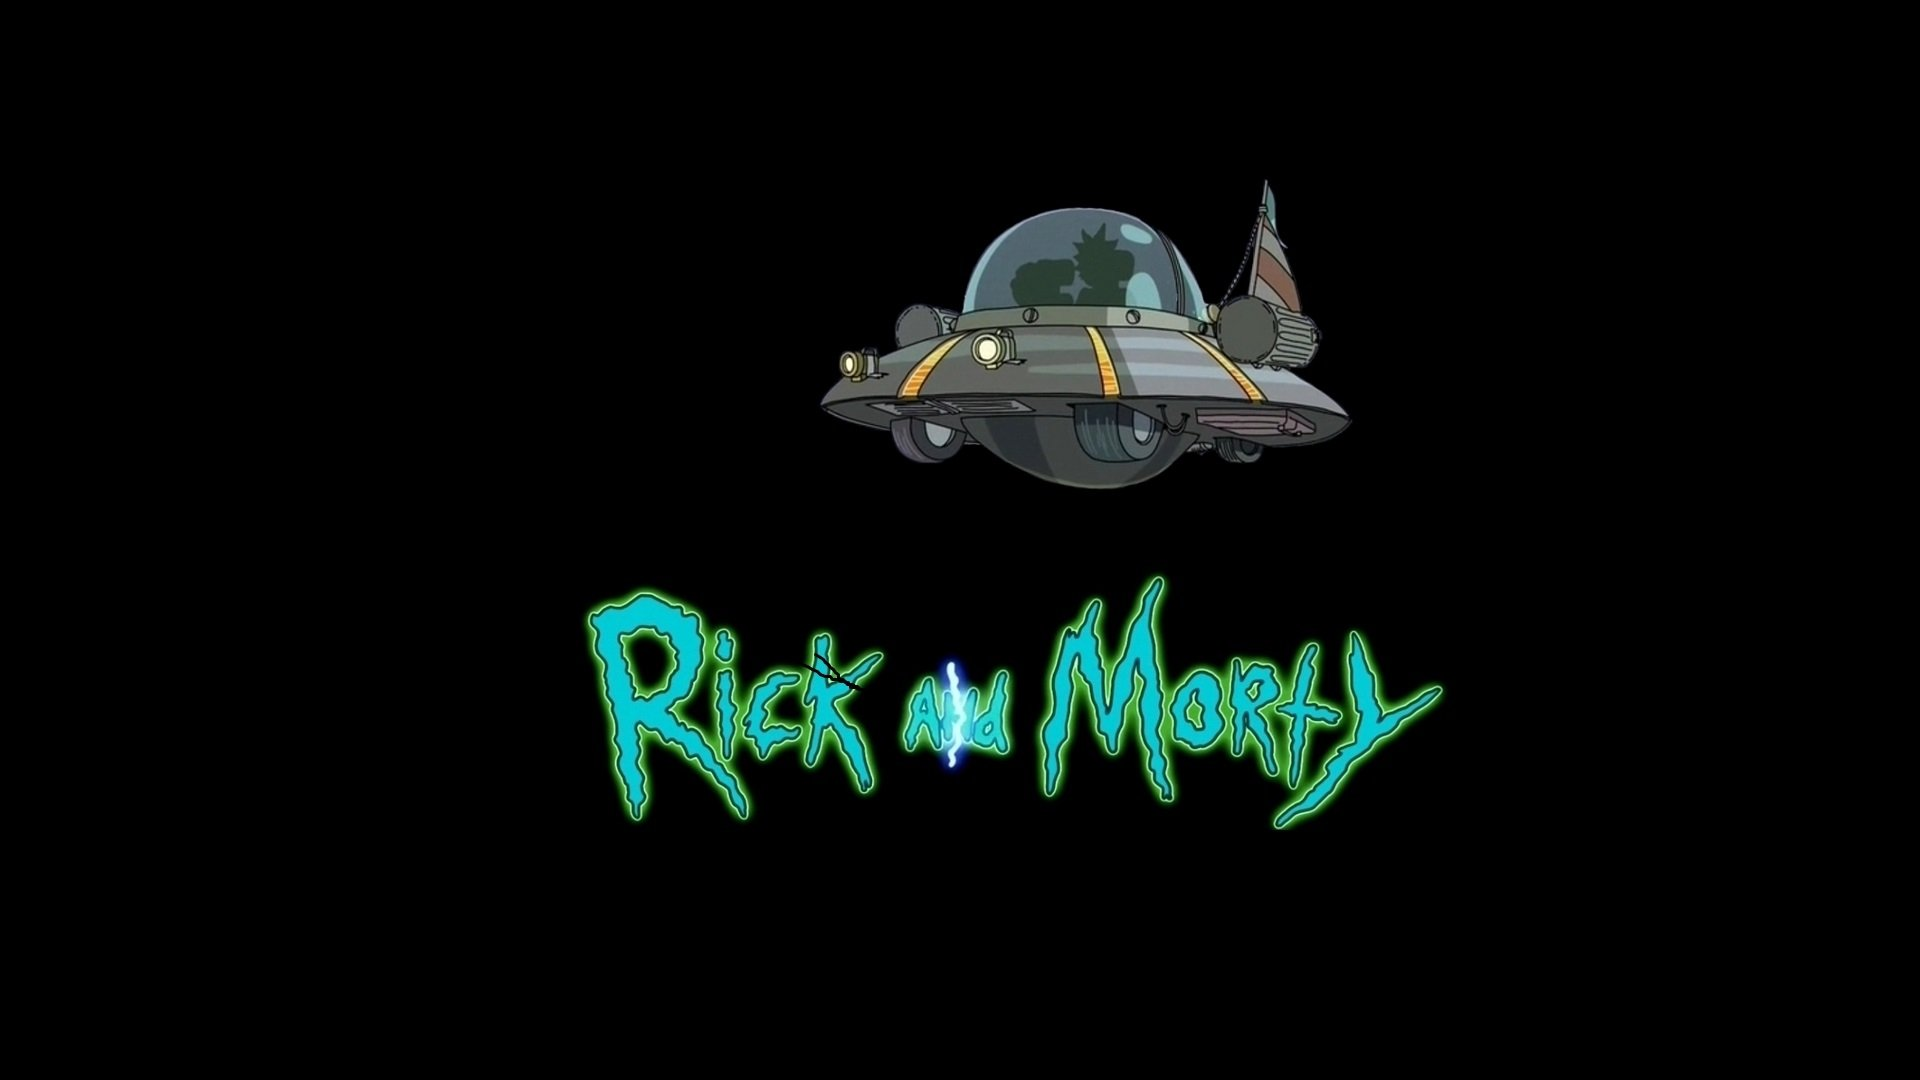 Rick And Morty Wallpaper Iphone Rick And Morty Full Hd Wallpaper And Background Image